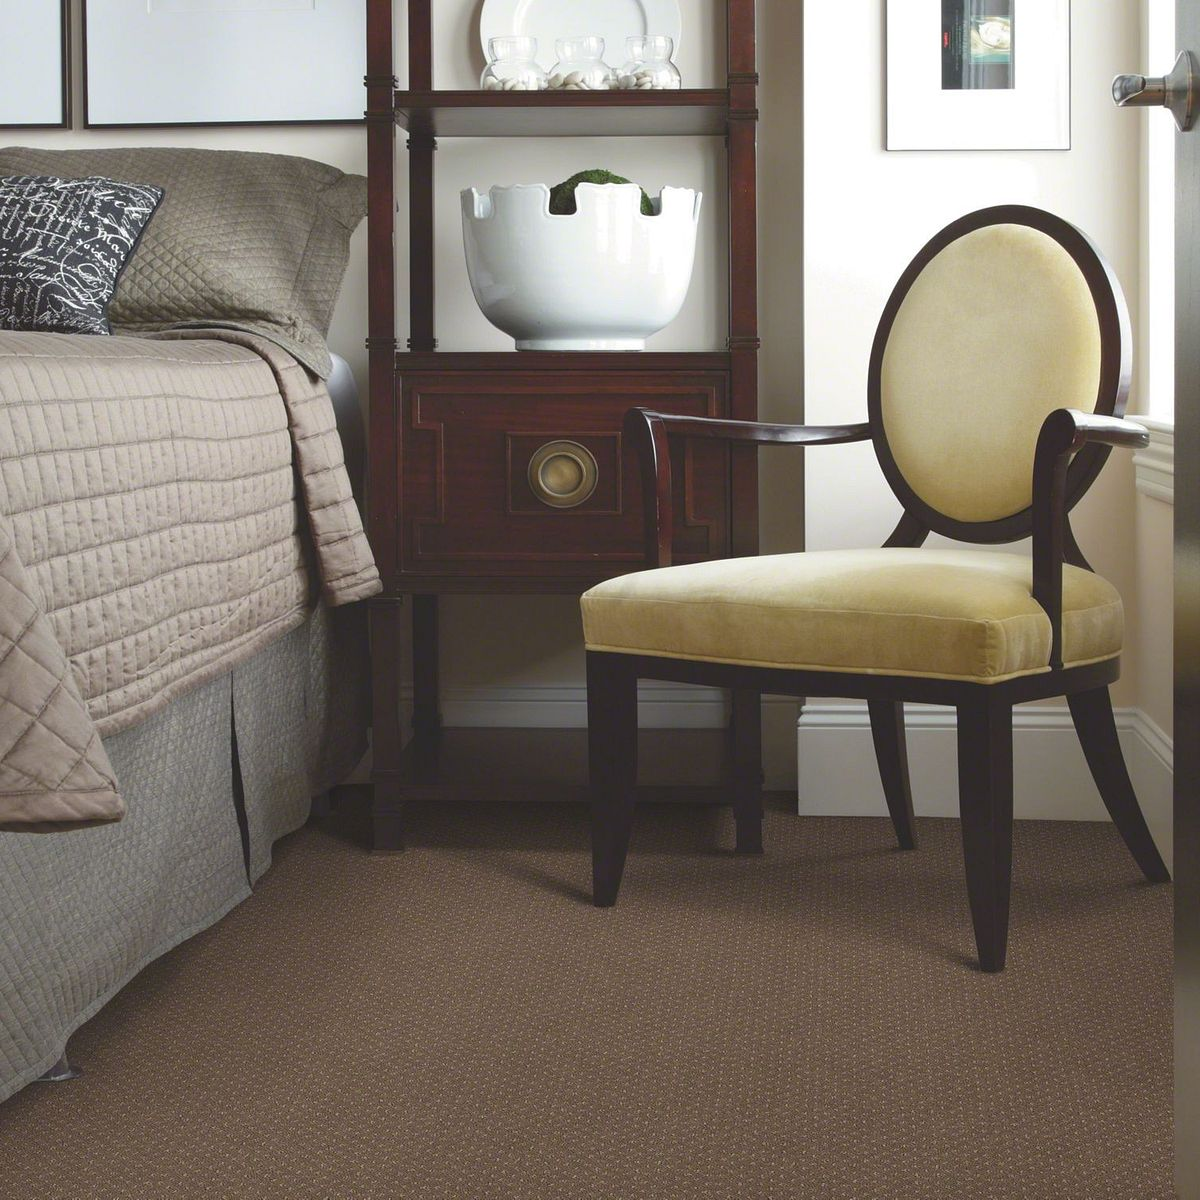 What To Expect And How To Prepare For Carpet Shaw Floors